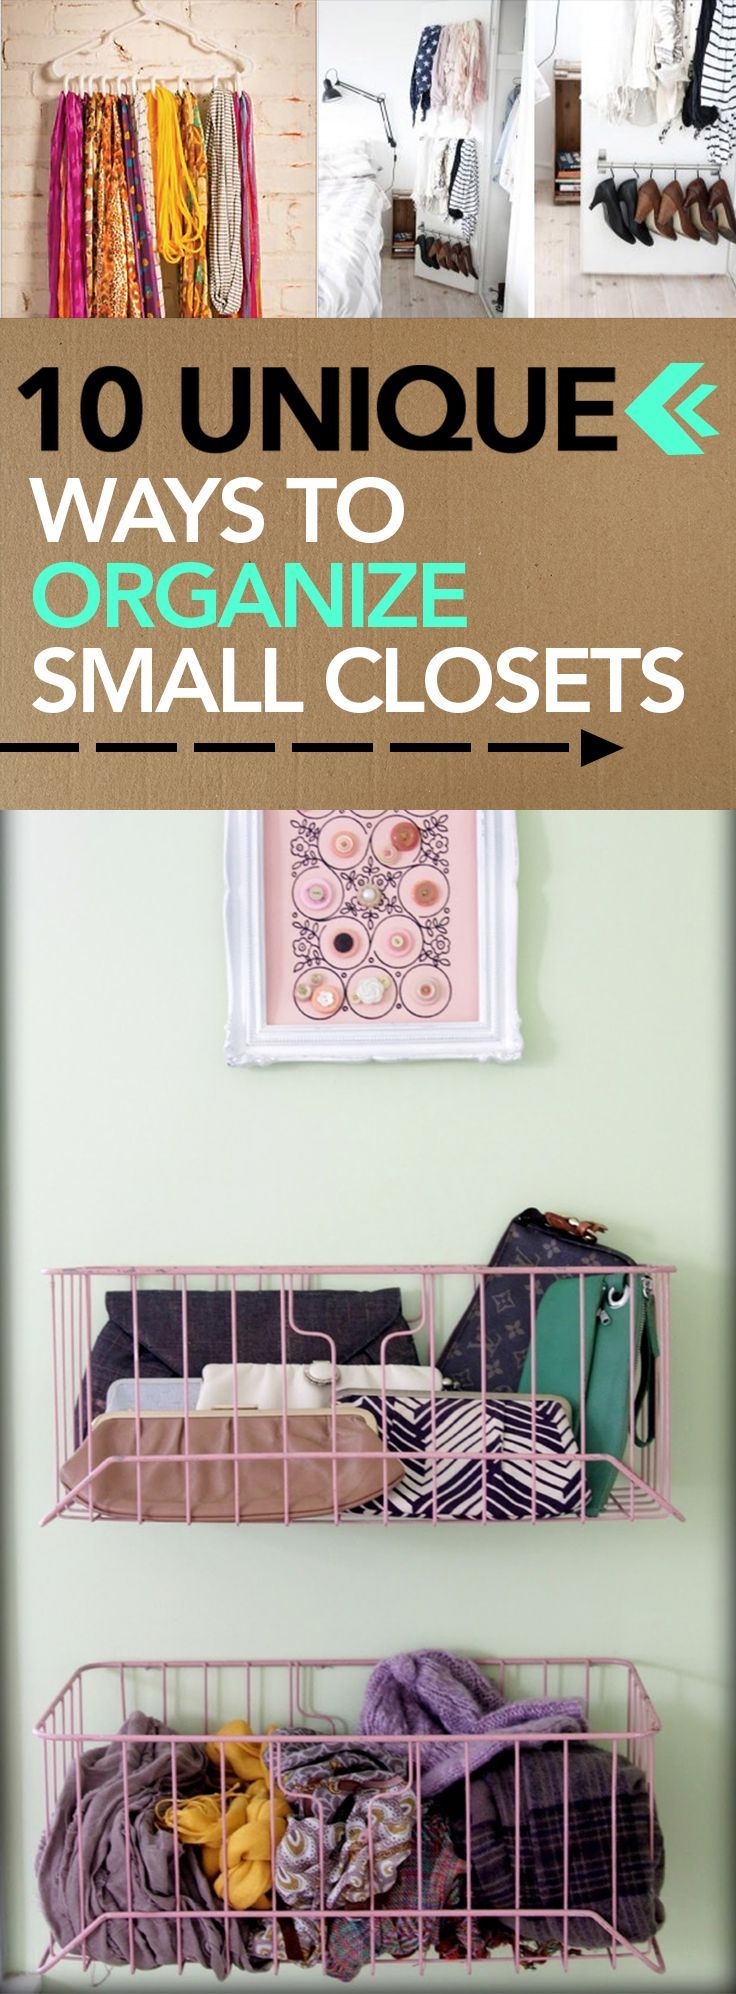 best 25 small closets ideas on pinterest closet redo 21102 | b0702138860cbef11faeb82c6ec5edd2 organize small closets ways to organize small bedroom